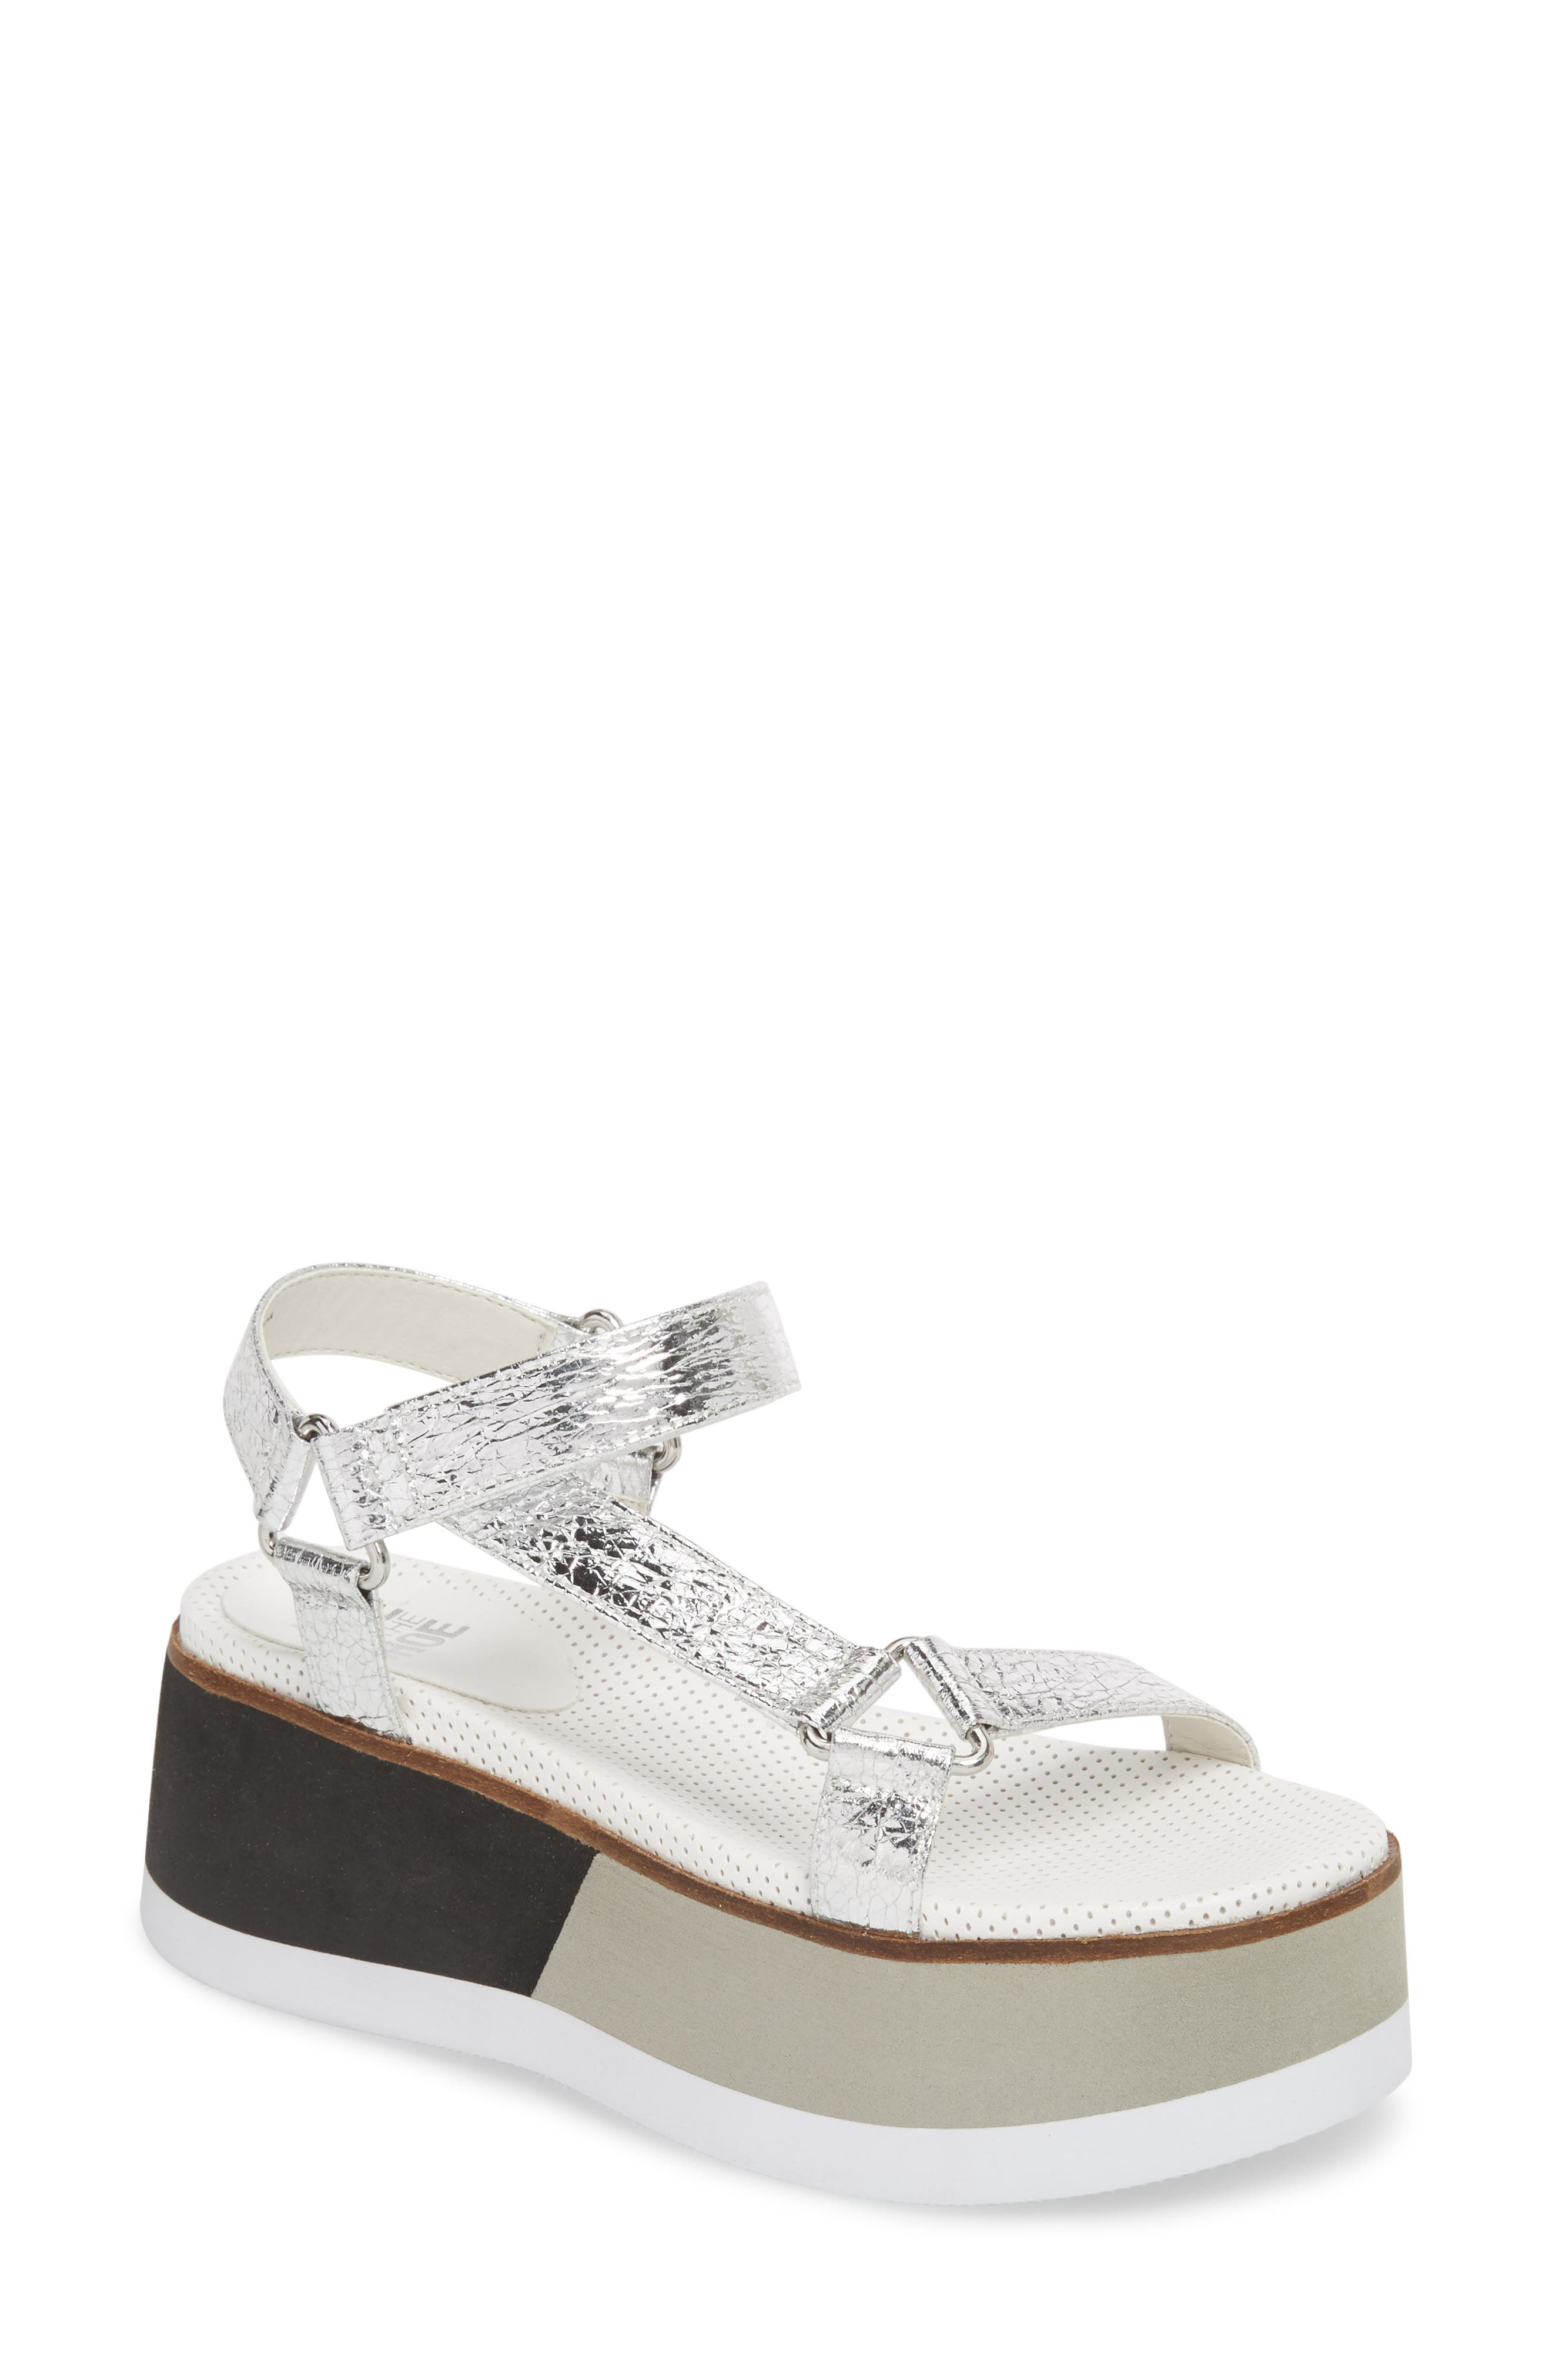 Jane and the Shoe Jayden Platform Sport Sandal (Women)